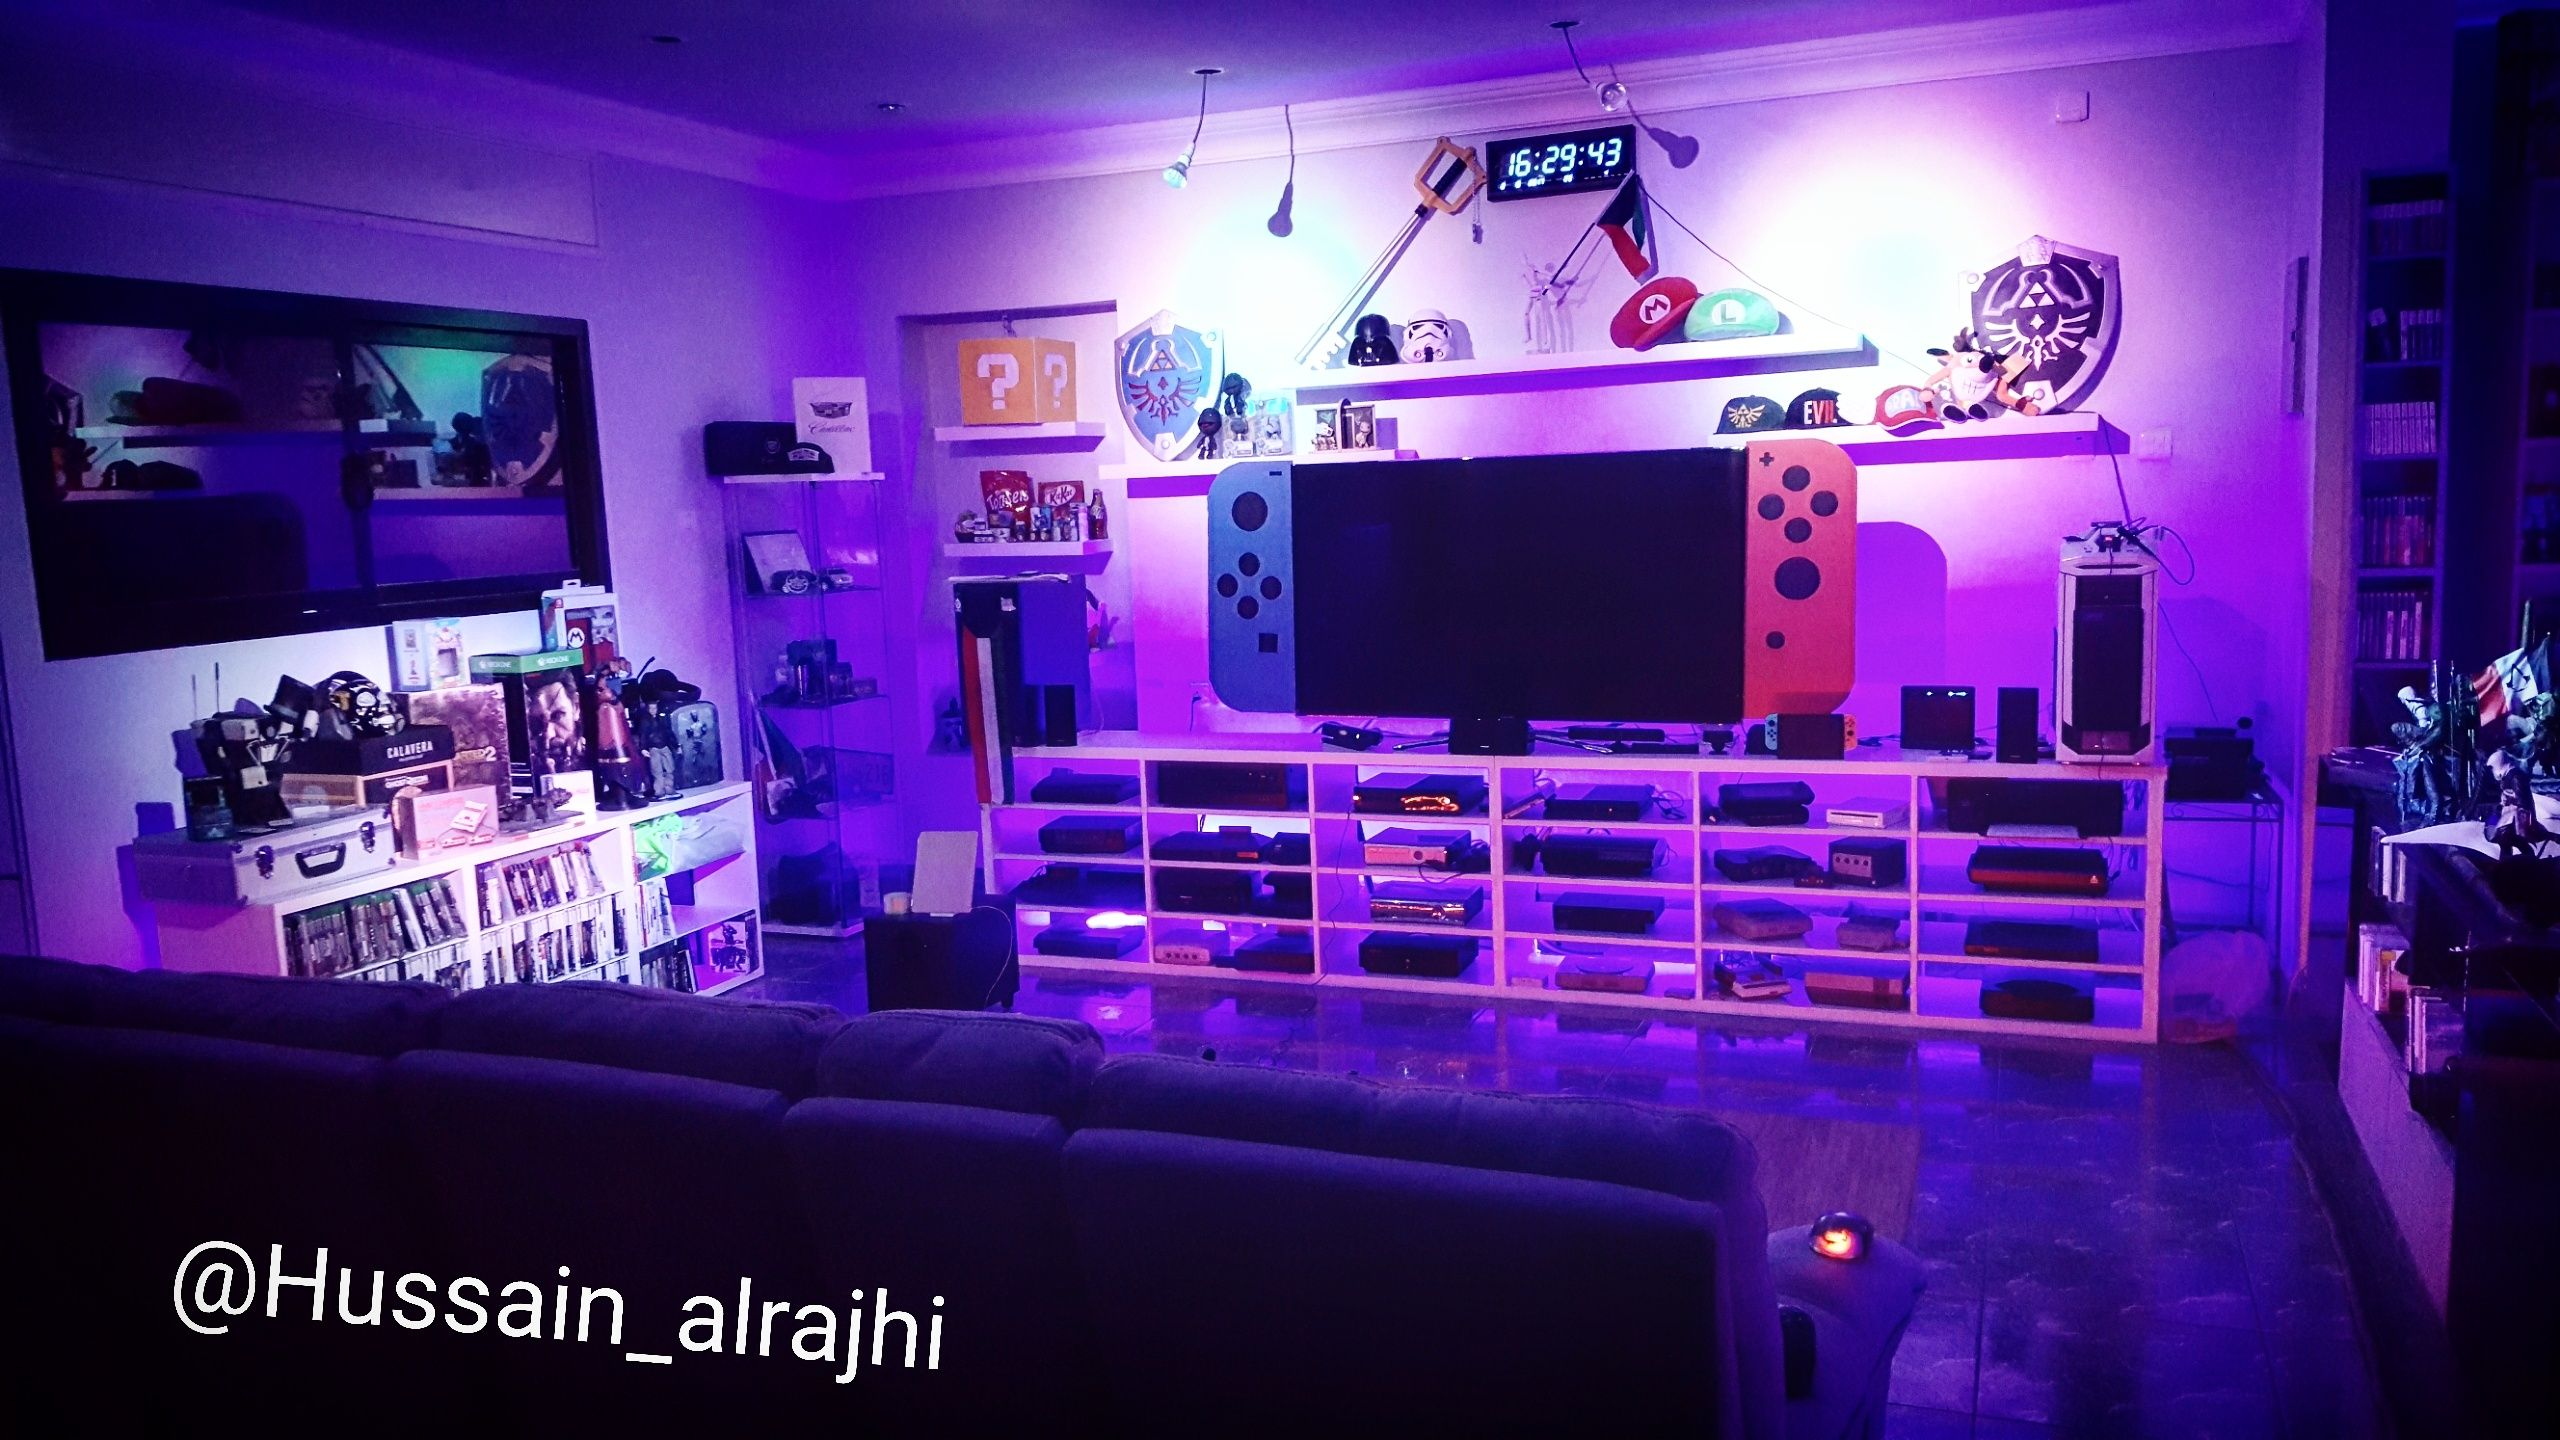 Tremendous My Game Room Collection Best Set Ups In 2019 Man Cave Download Free Architecture Designs Scobabritishbridgeorg